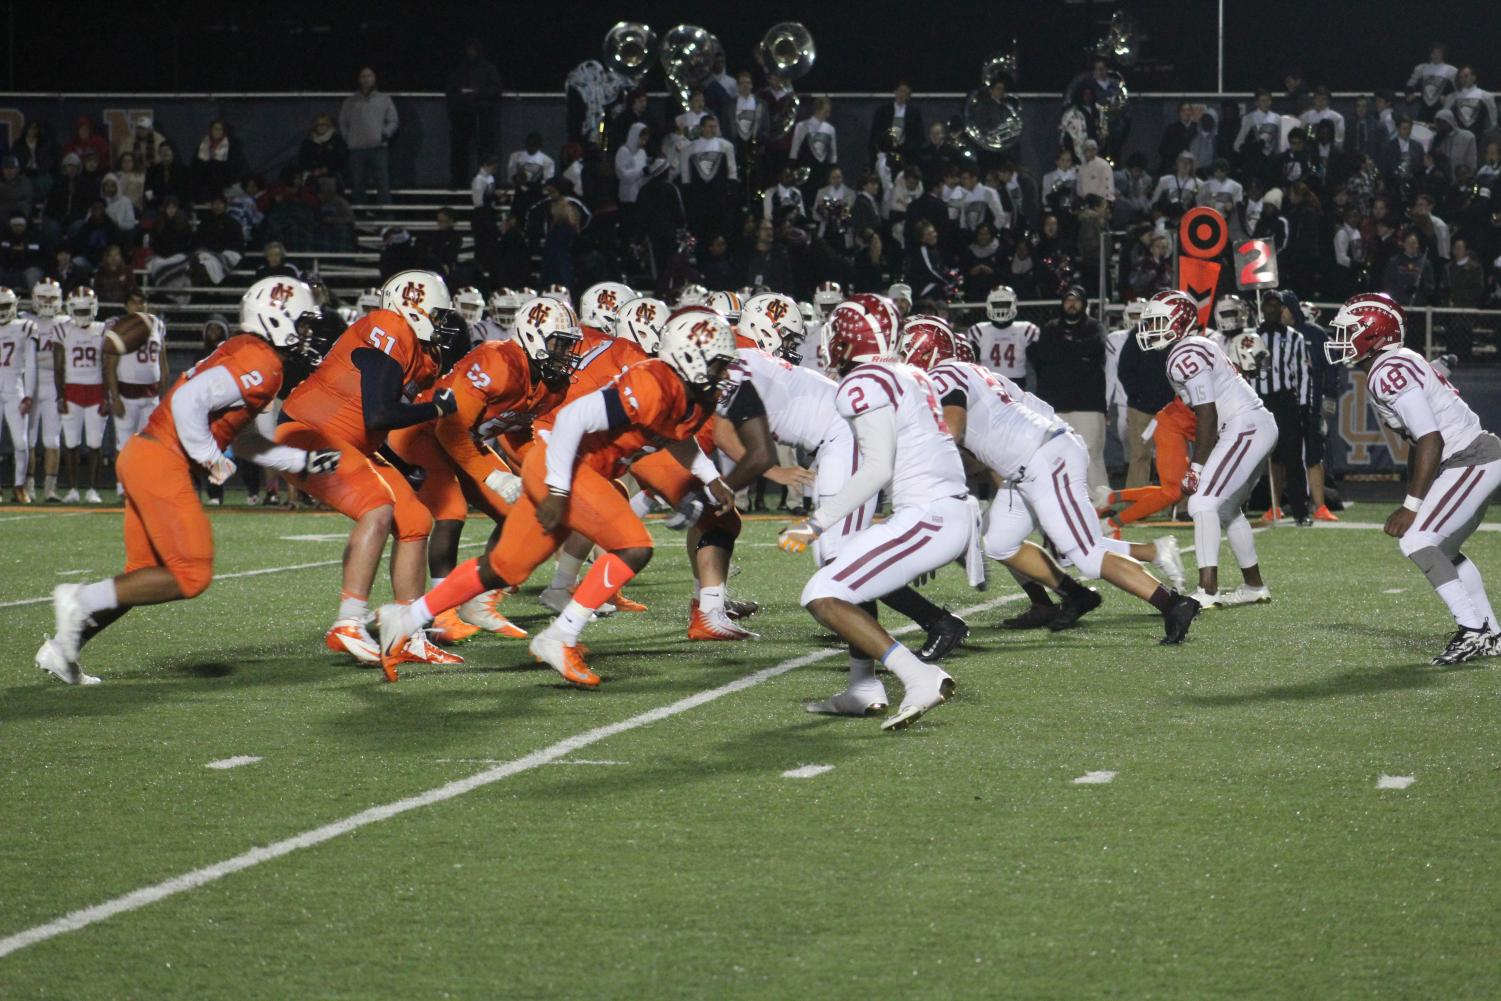 """The NC Varsity football team played their last game of the season against the undefeated team from Hillgrove. NC's defense prepared to stop Hillgrove from making a first down. """"The outcome of the game was a good one because the players left everything they had out on the field,"""" Coach Donte Sawyer said."""